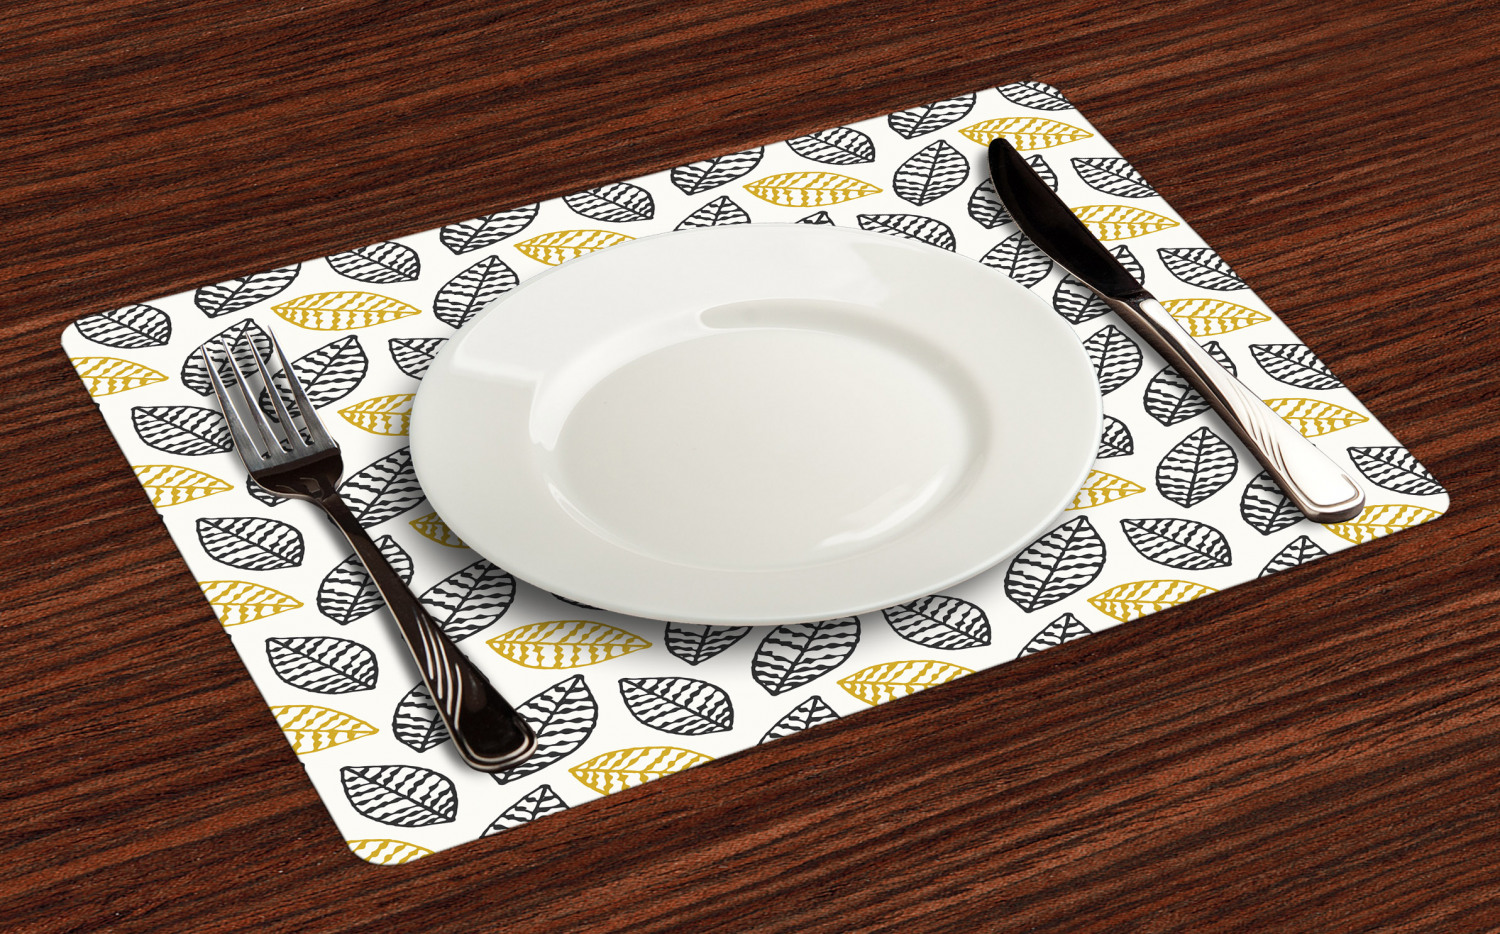 Ambesonne-Fabric-Place-Mats-Set-of-4-Placemats-for-Dining-Room-and-Kitchen-Table thumbnail 49